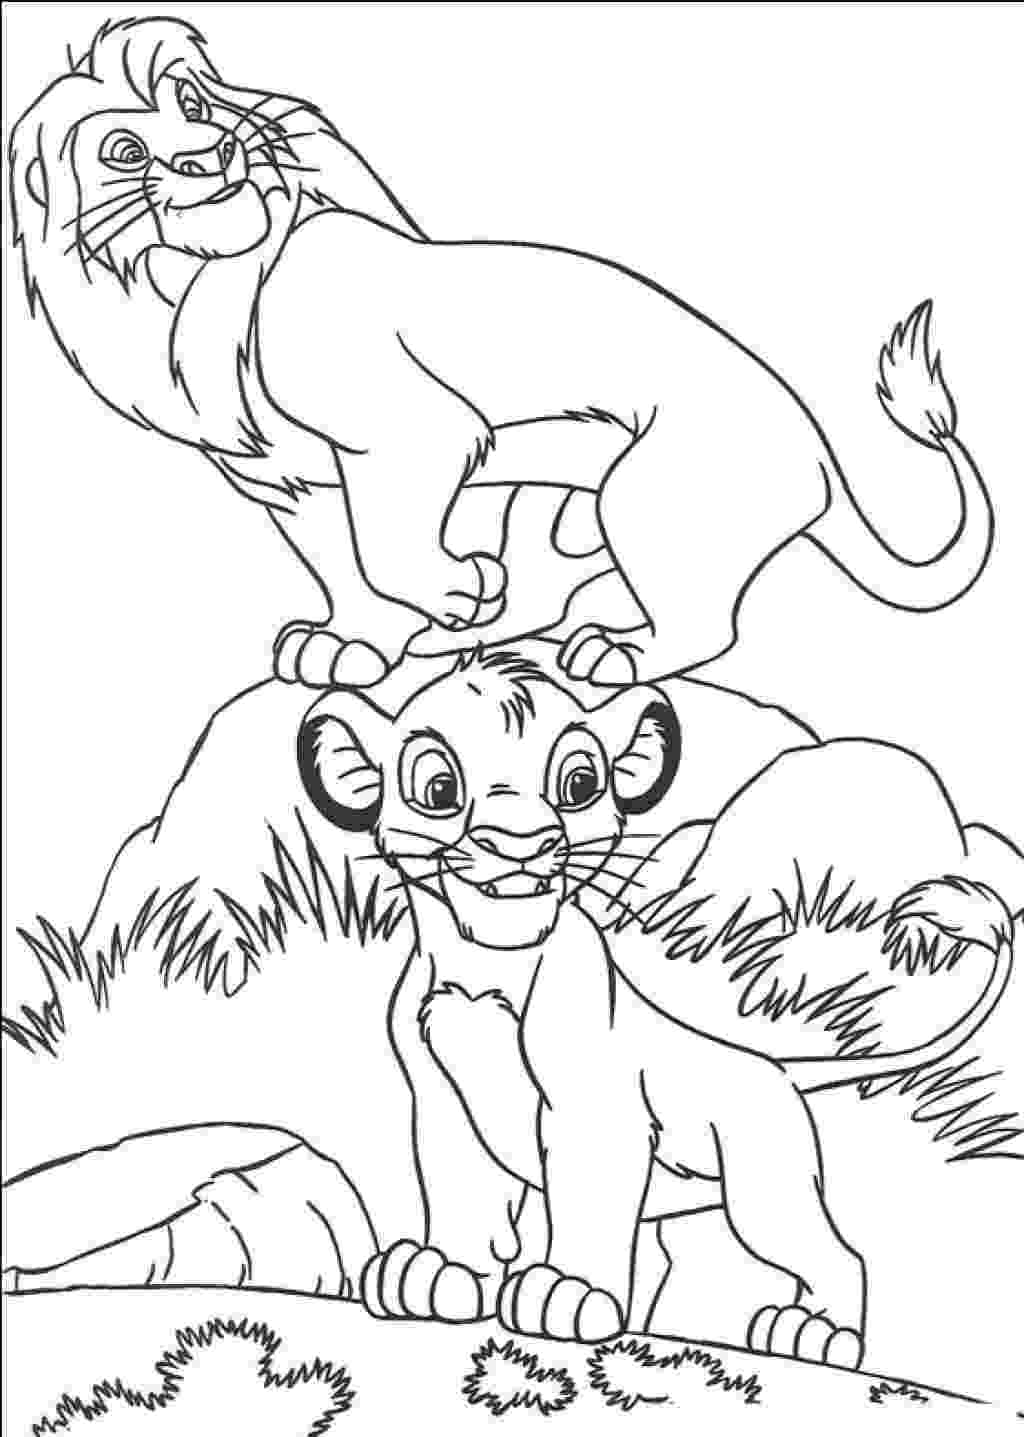 simba coloring page lion king coloring pages best coloring pages for kids coloring page simba